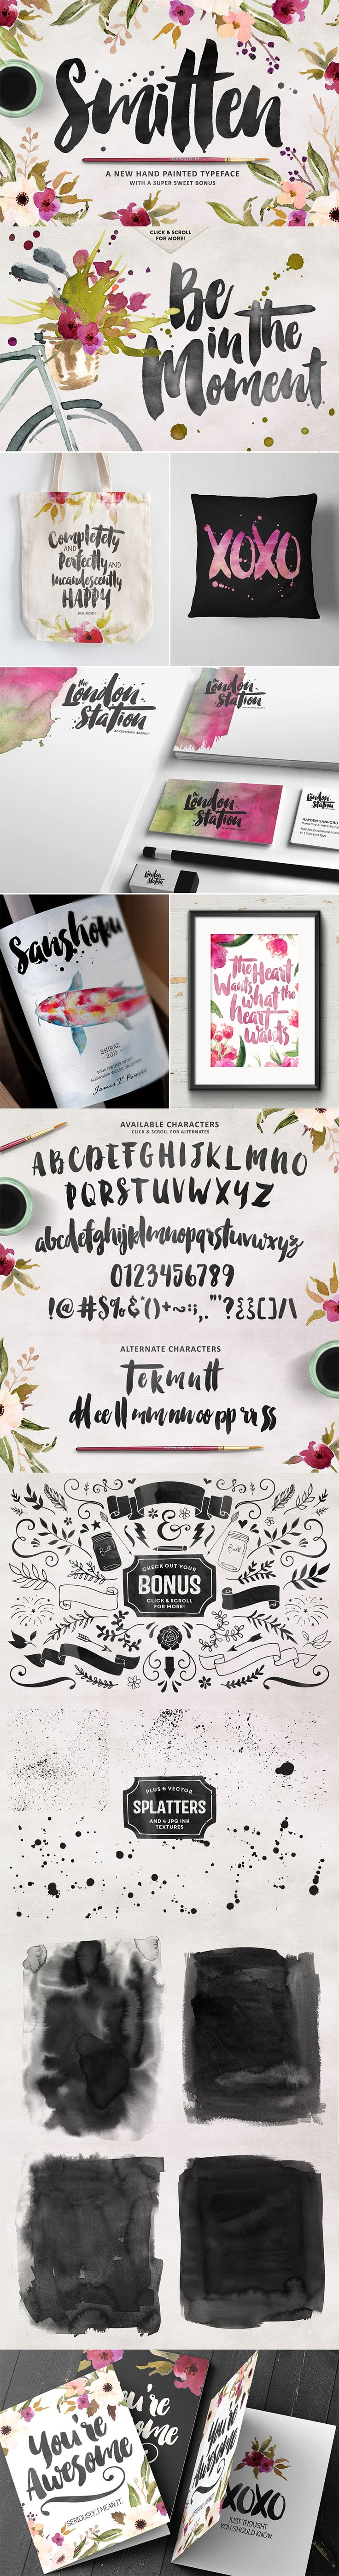 33 New and Incredible Fonts (Plus Hundreds of Freebies) - Only $39 | MyDesignDeals